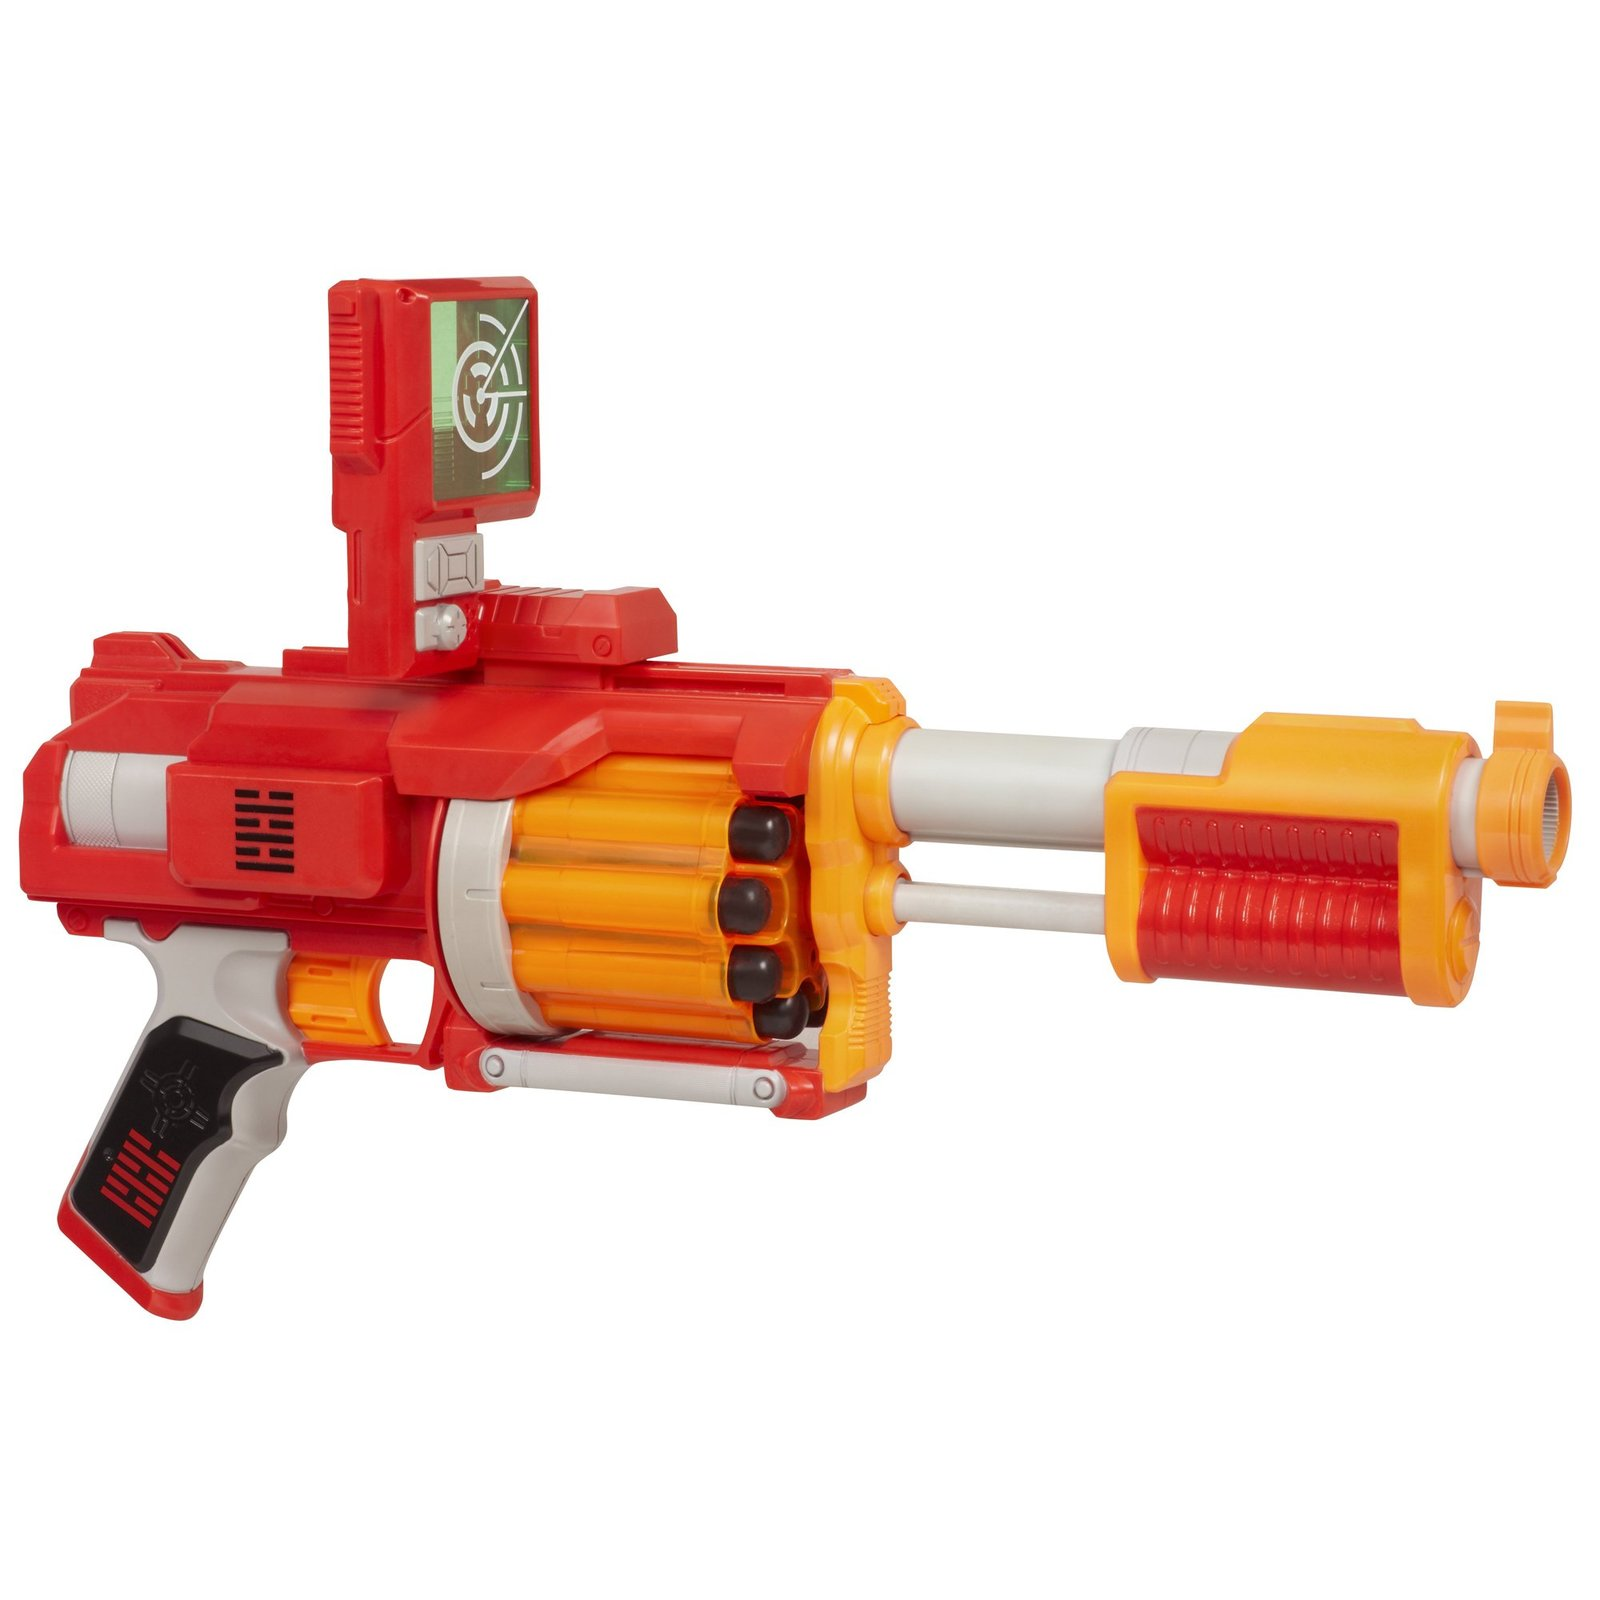 G.I. Joe Retaliation - Ninja Commando Blaster From The Makers Of Nerf